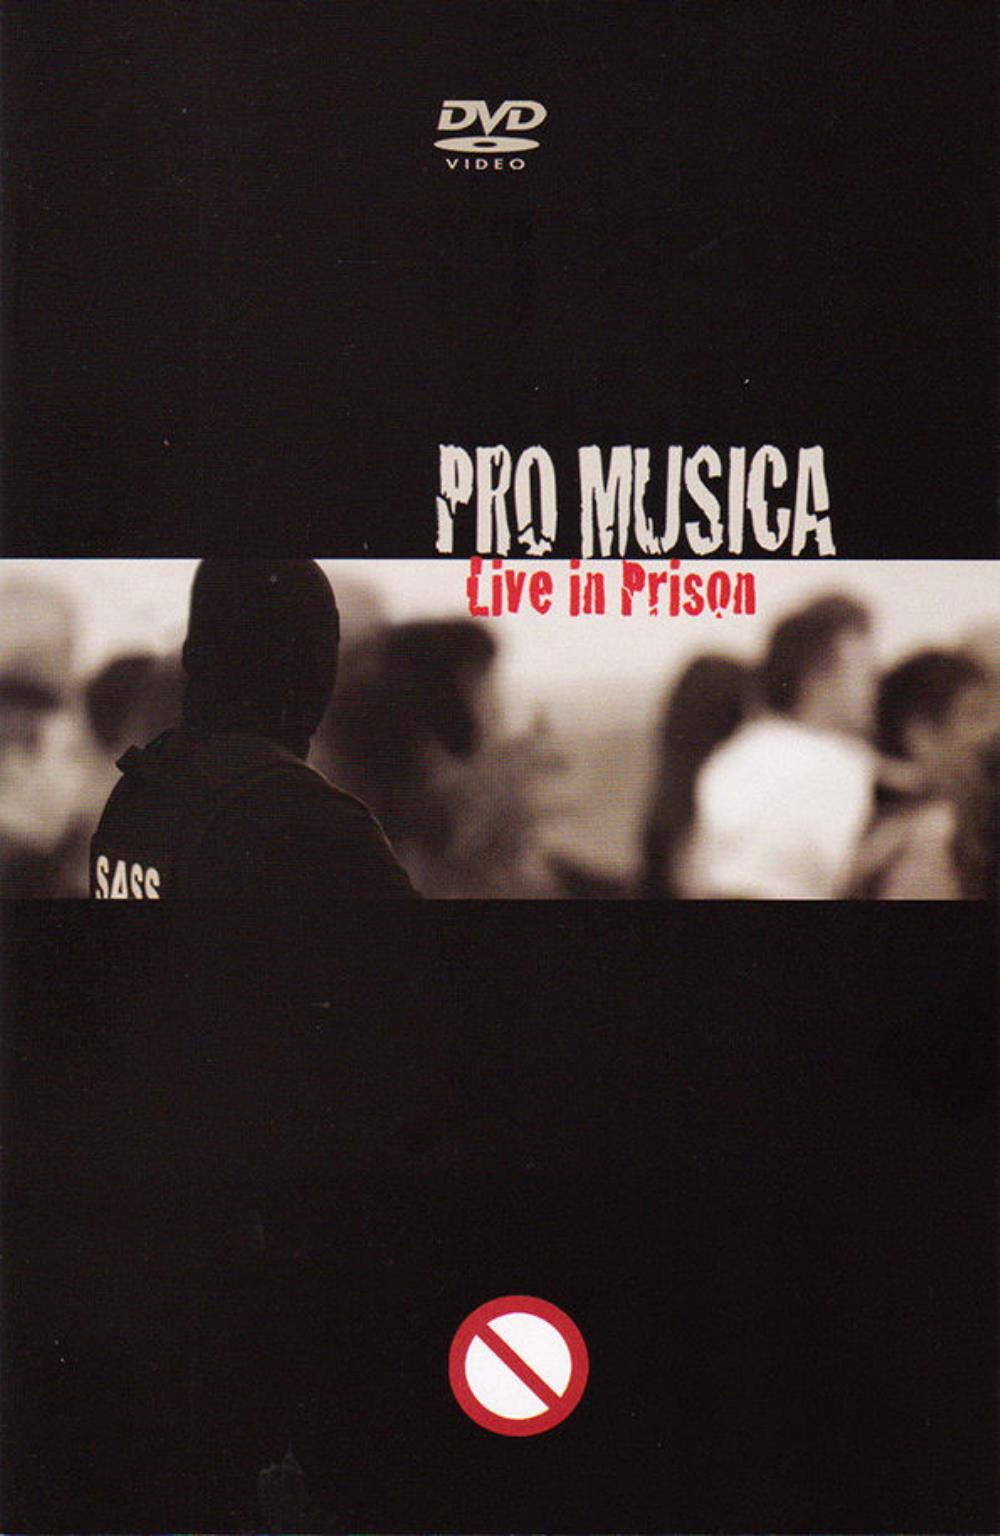 Pro Musica Live in Prison album cover